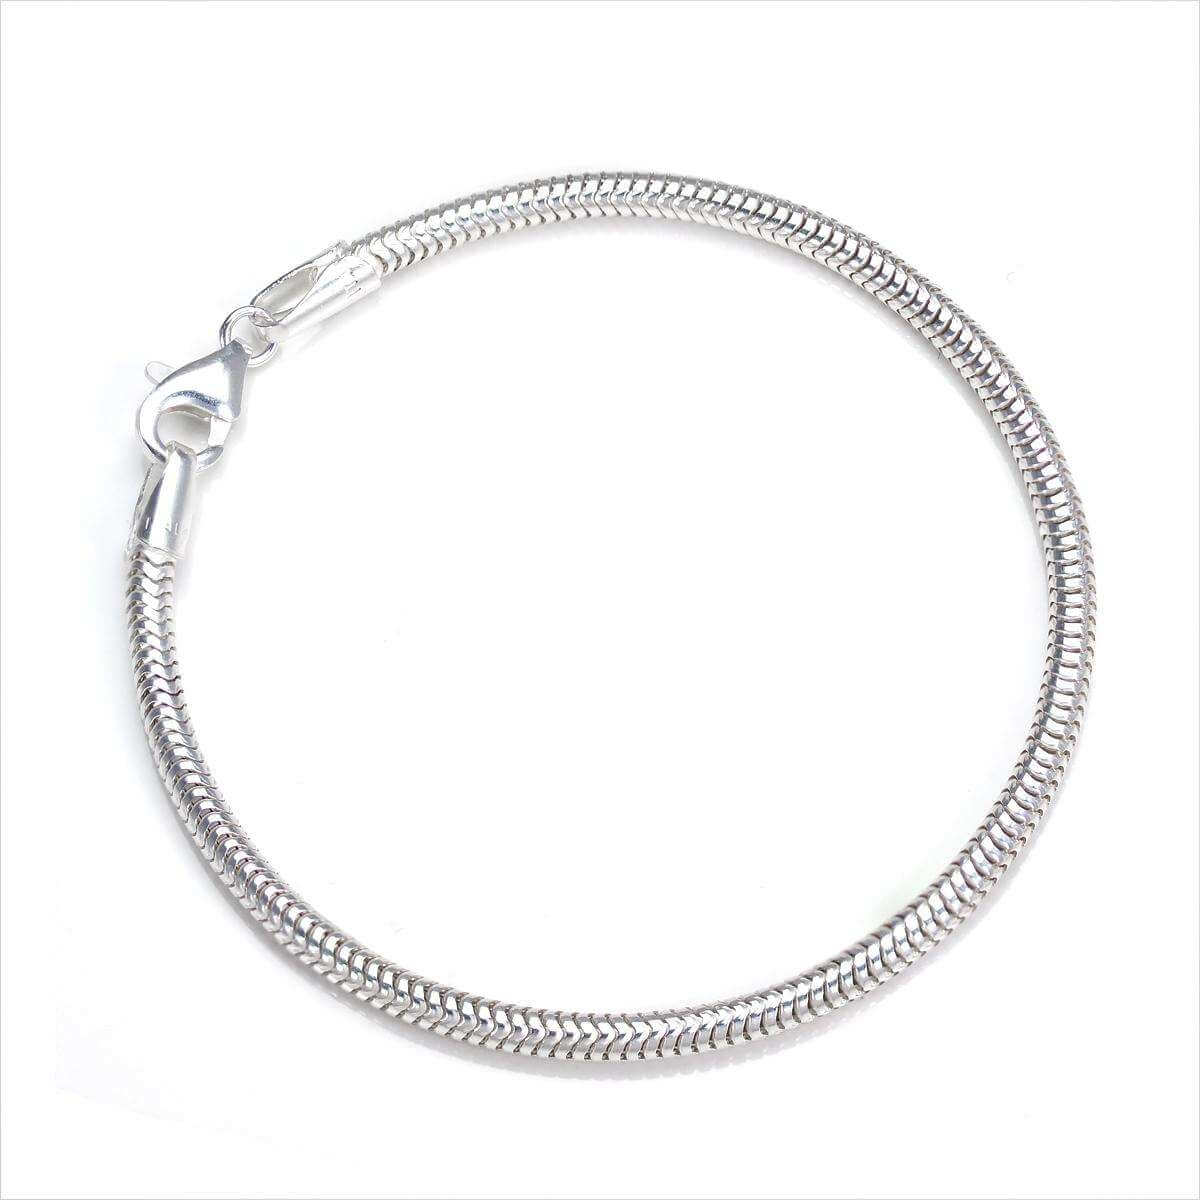 Sterling Silver 3mm Snake Bracelet - 7.5 Inches